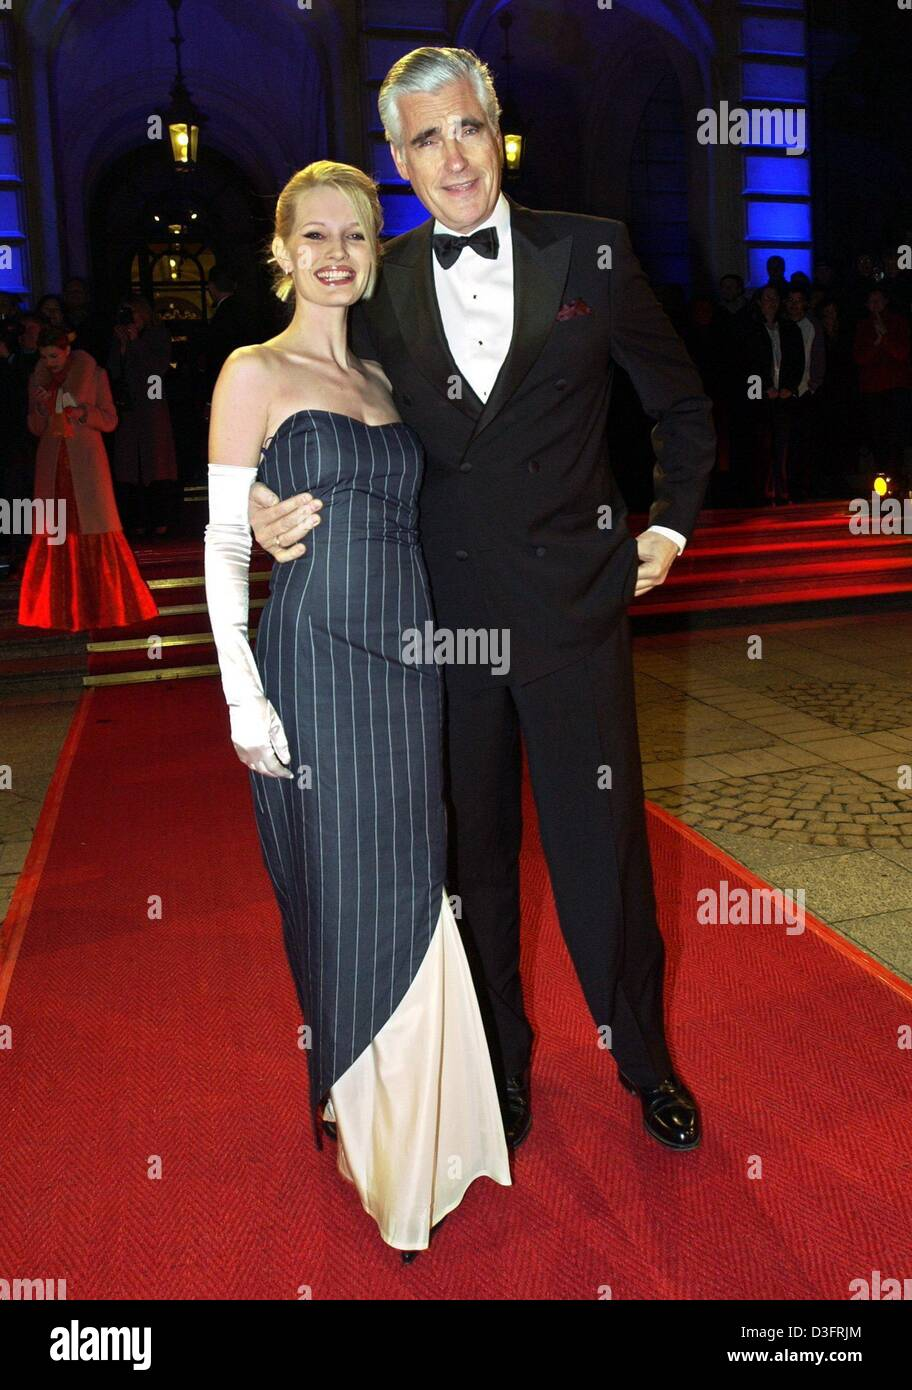 (dpa) - Actor Sky Du Mont ('Eyes Wide Shut', 'Der Schuh des Manitu') and his wife Mirja arrive to - Stock Image